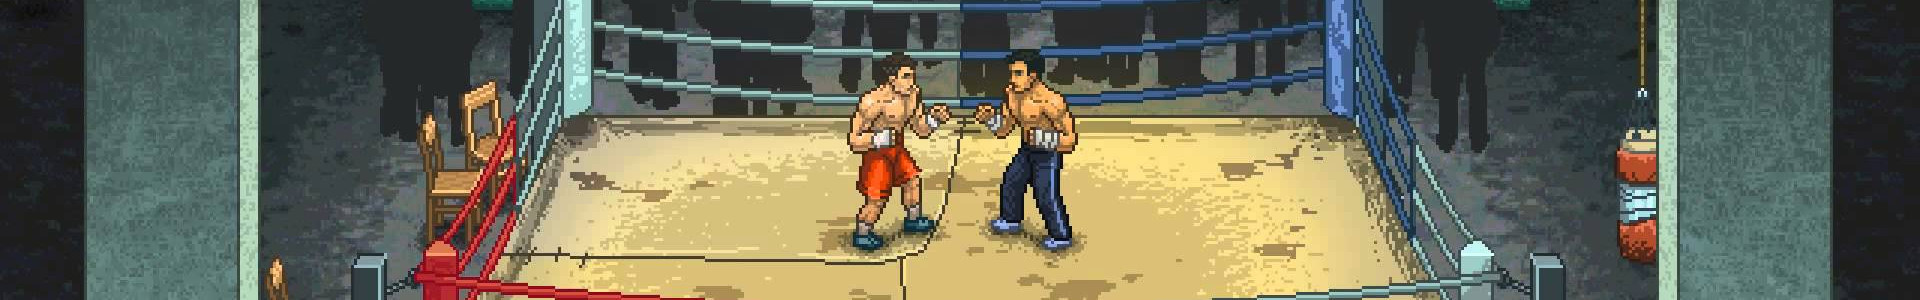 Banner media of Punch Club video game.